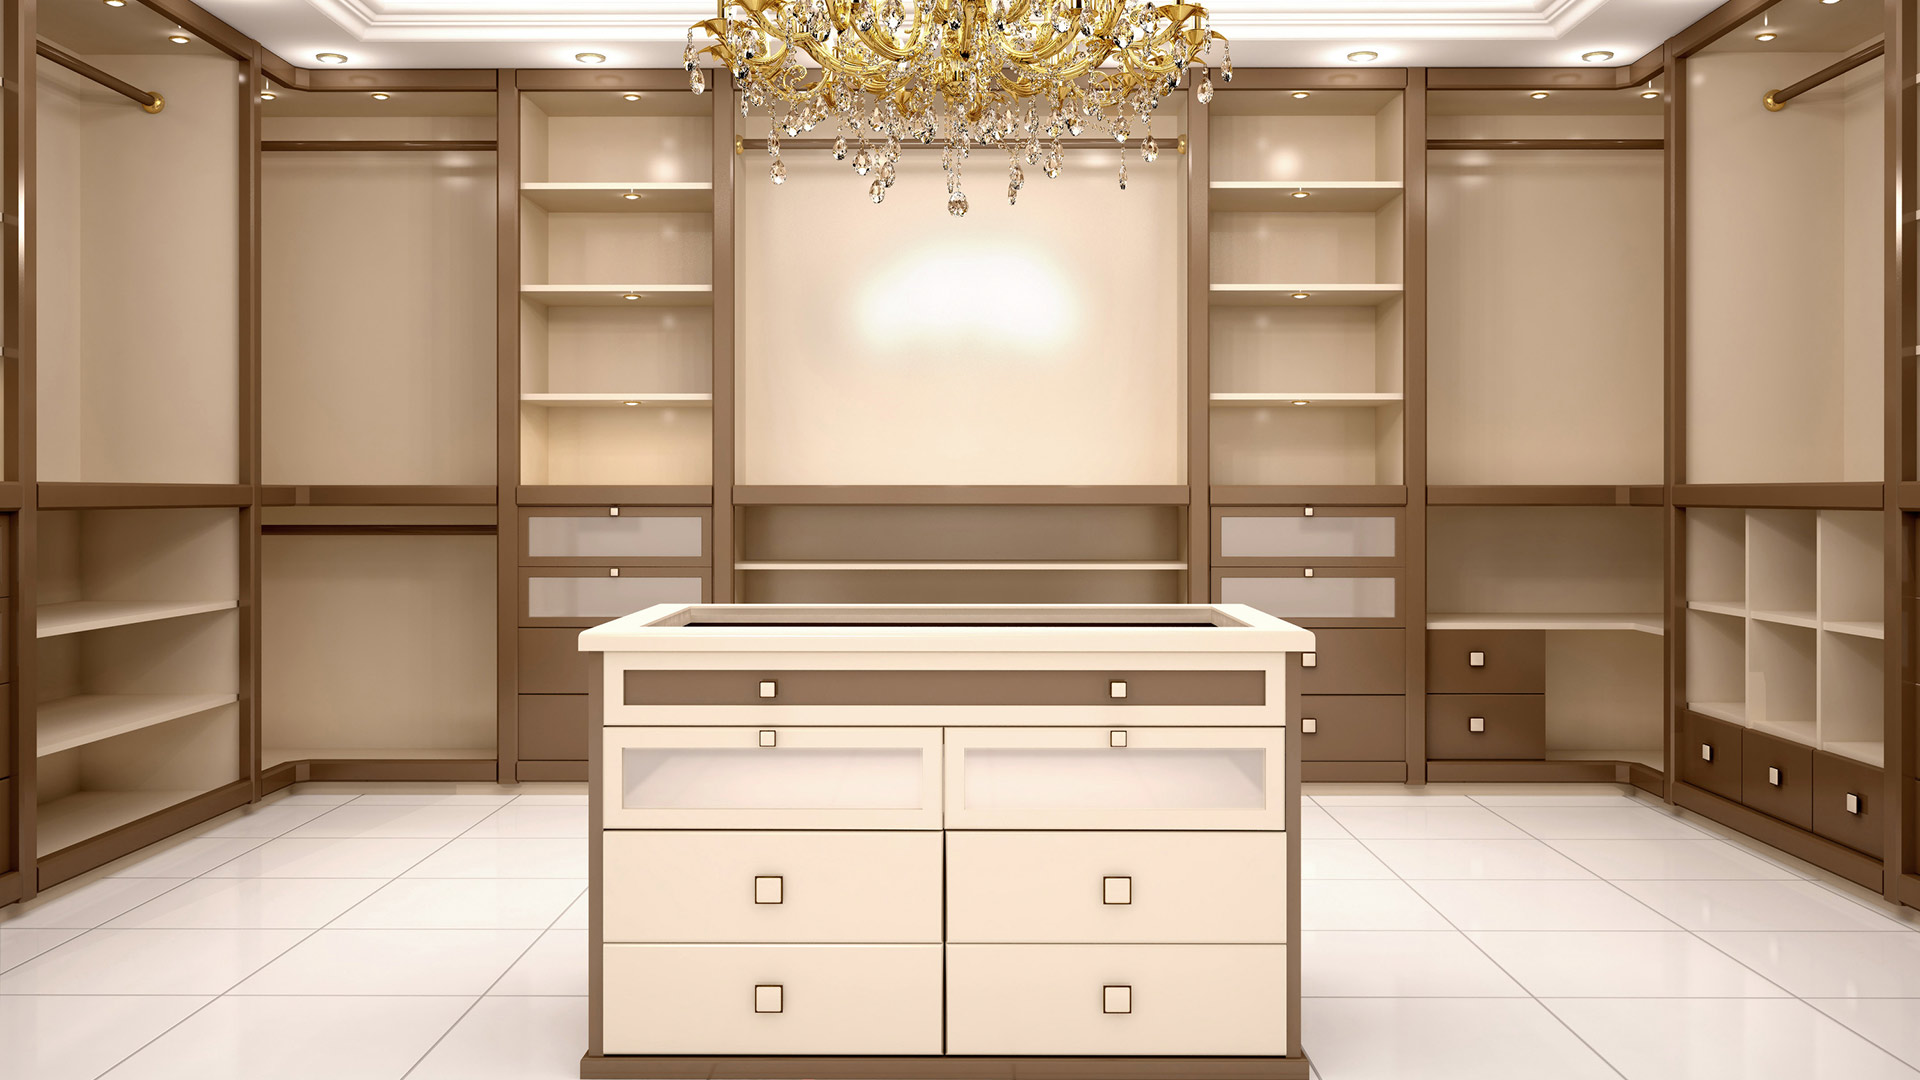 Kitchen Cabinet And Closet Remodeling And Installation In Greater Orlando And Central Florida